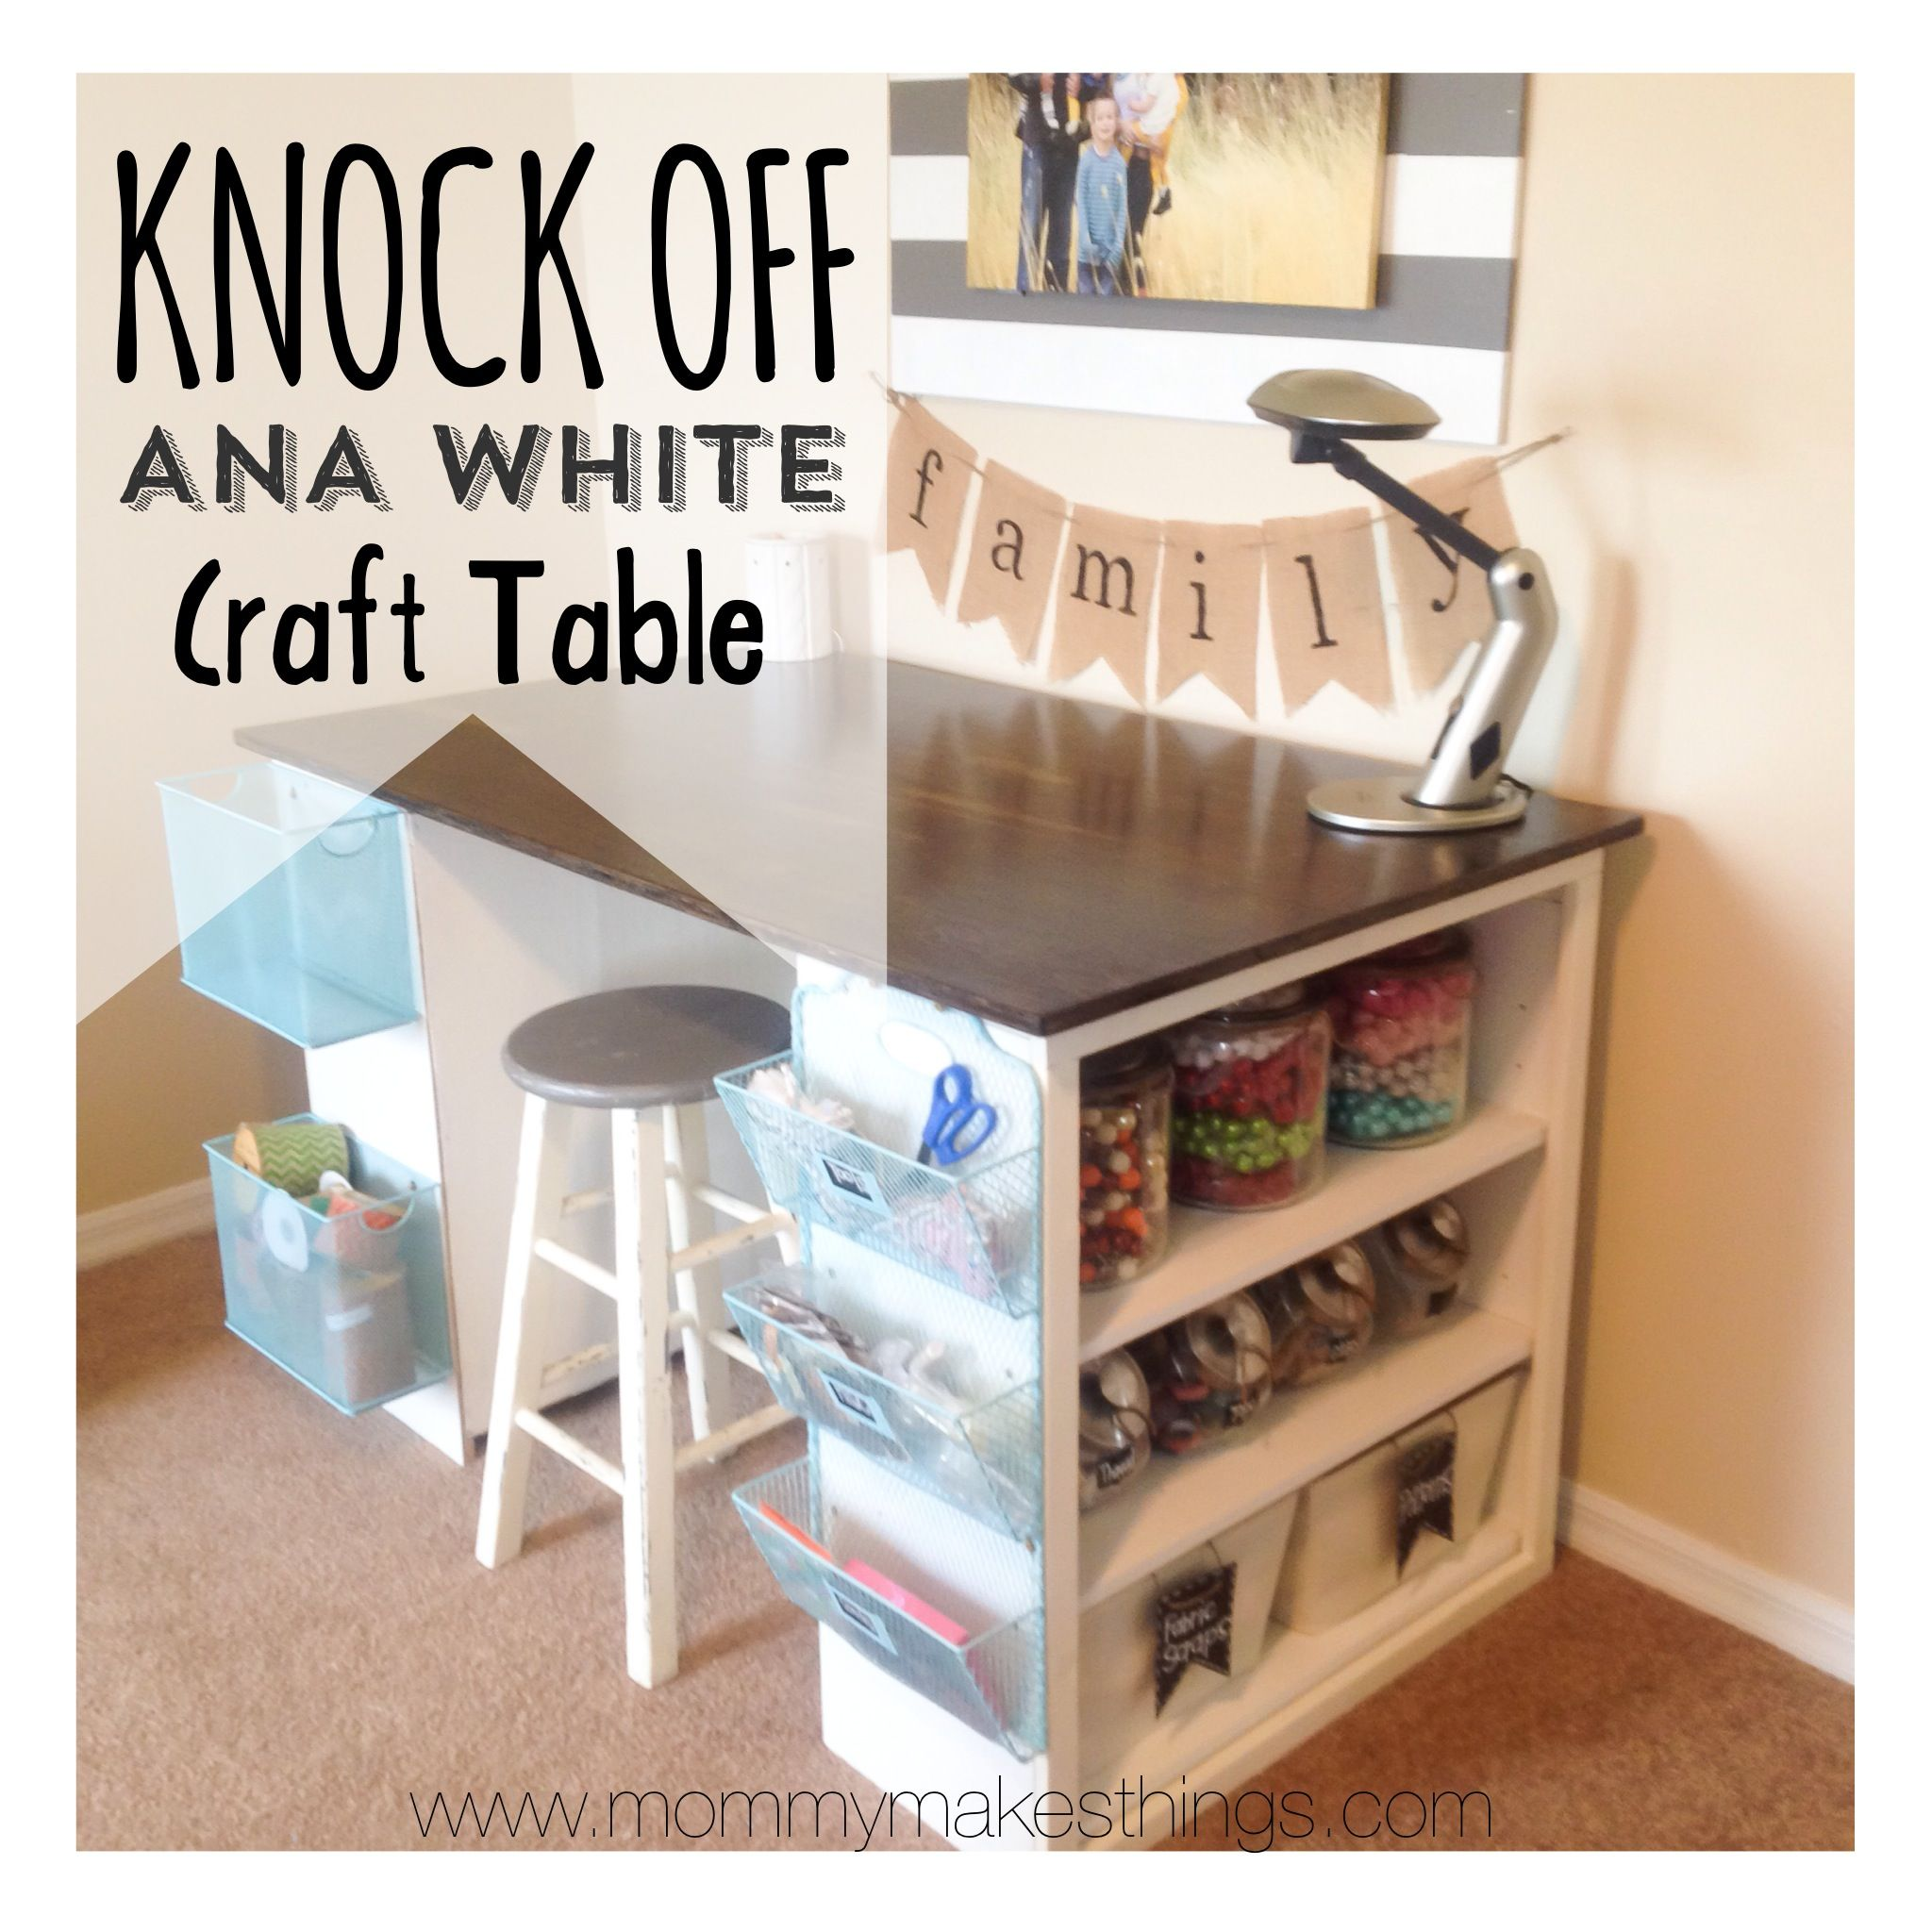 Diy Ana White Craft Table Knock Off For Under 75 By Mommy Makes Things